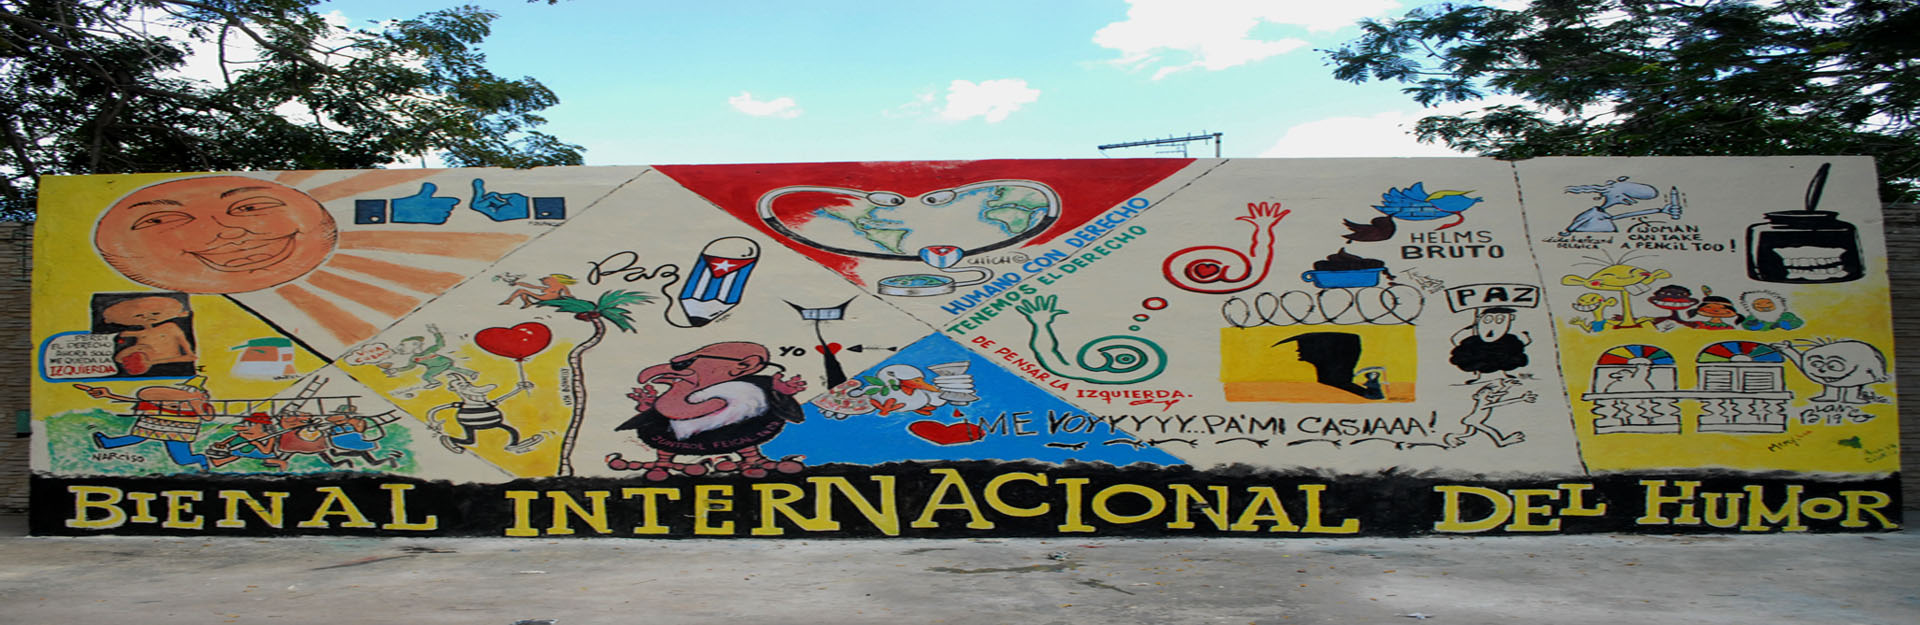 International Biennial of Humor,Artemisa Cuba Travel